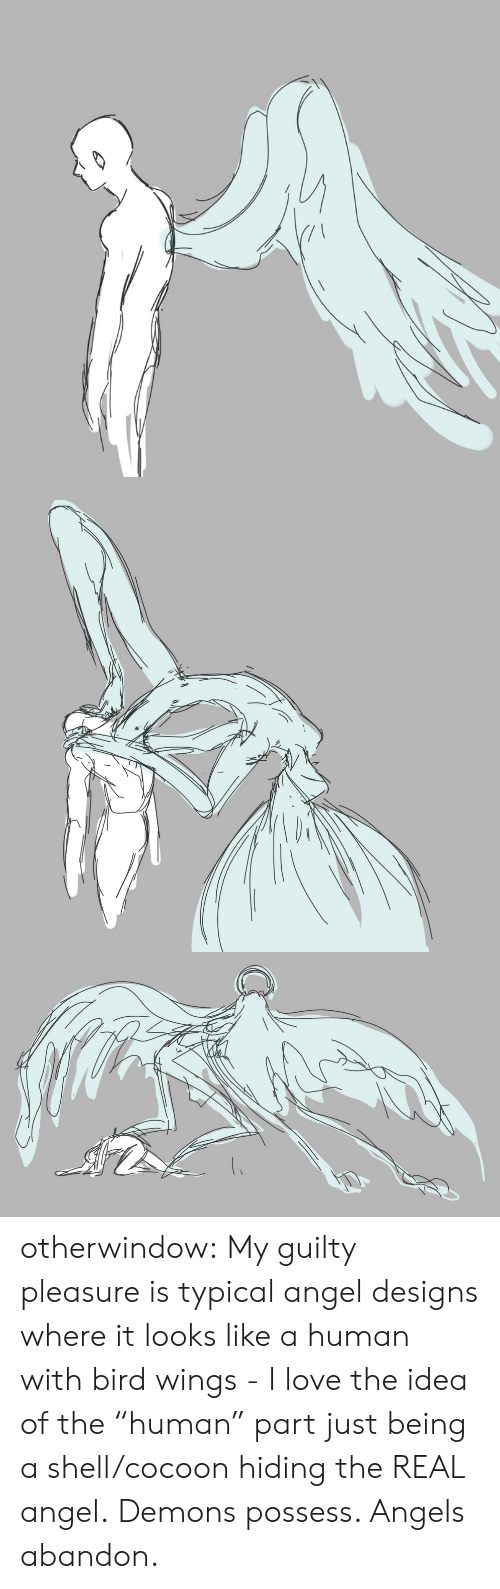 """demons: otherwindow:   My guilty pleasure is typical angel designs where it looks like a human with bird wings - I love the idea of the """"human"""" part just being a shell/cocoon hiding the REAL angel.   Demons possess. Angels abandon."""